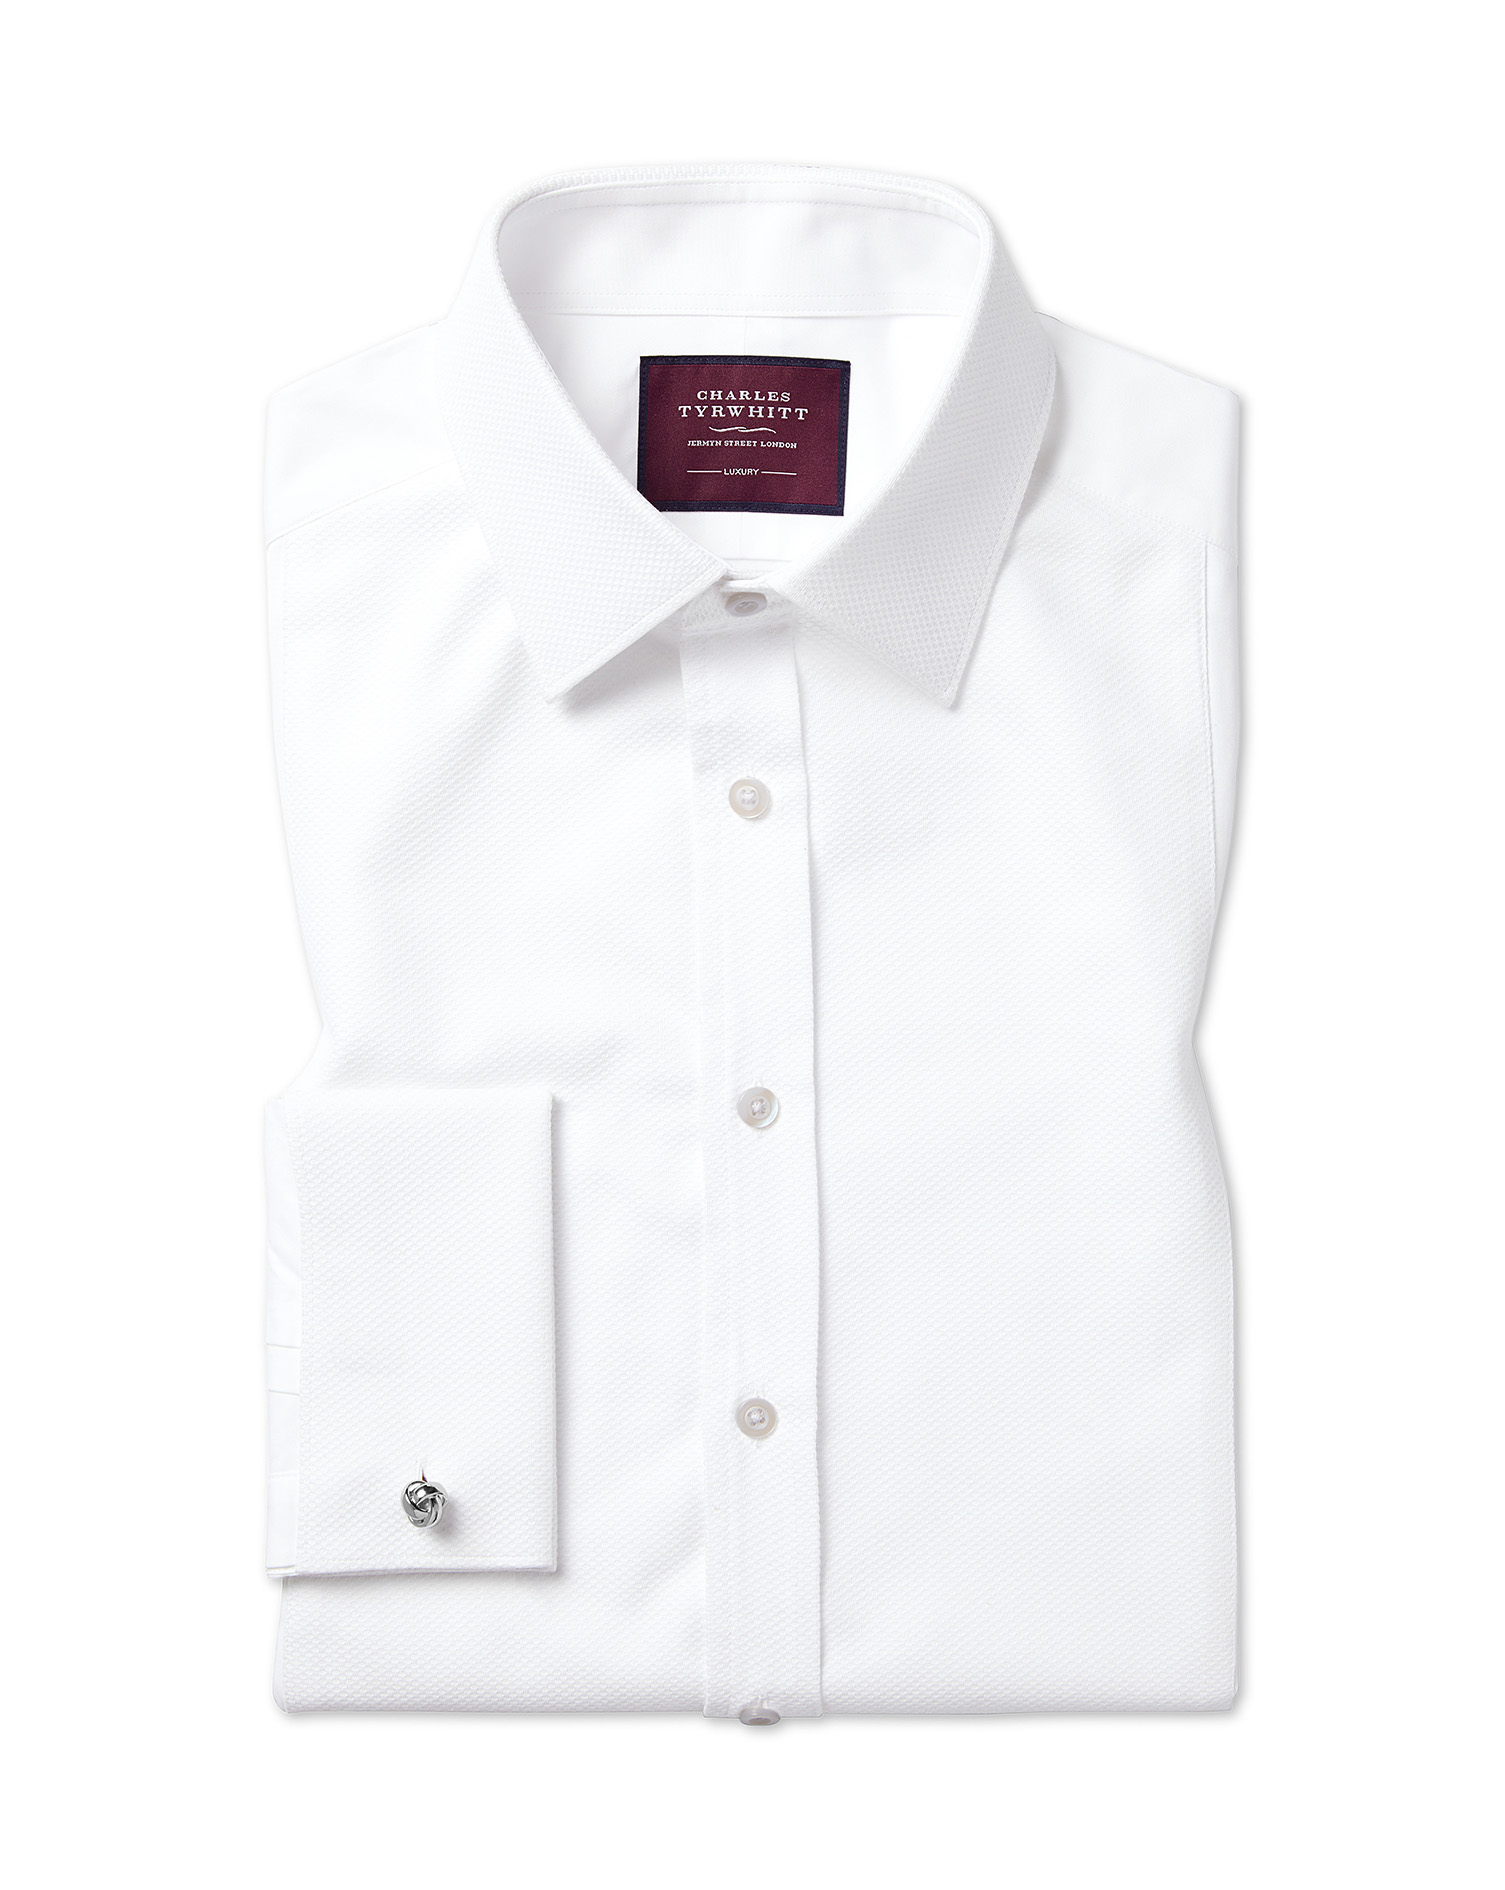 Slim Fit Luxury Marcella Bib Front White Evening Egyptian Cotton Formal Shirt Double Cuff Size 17/37